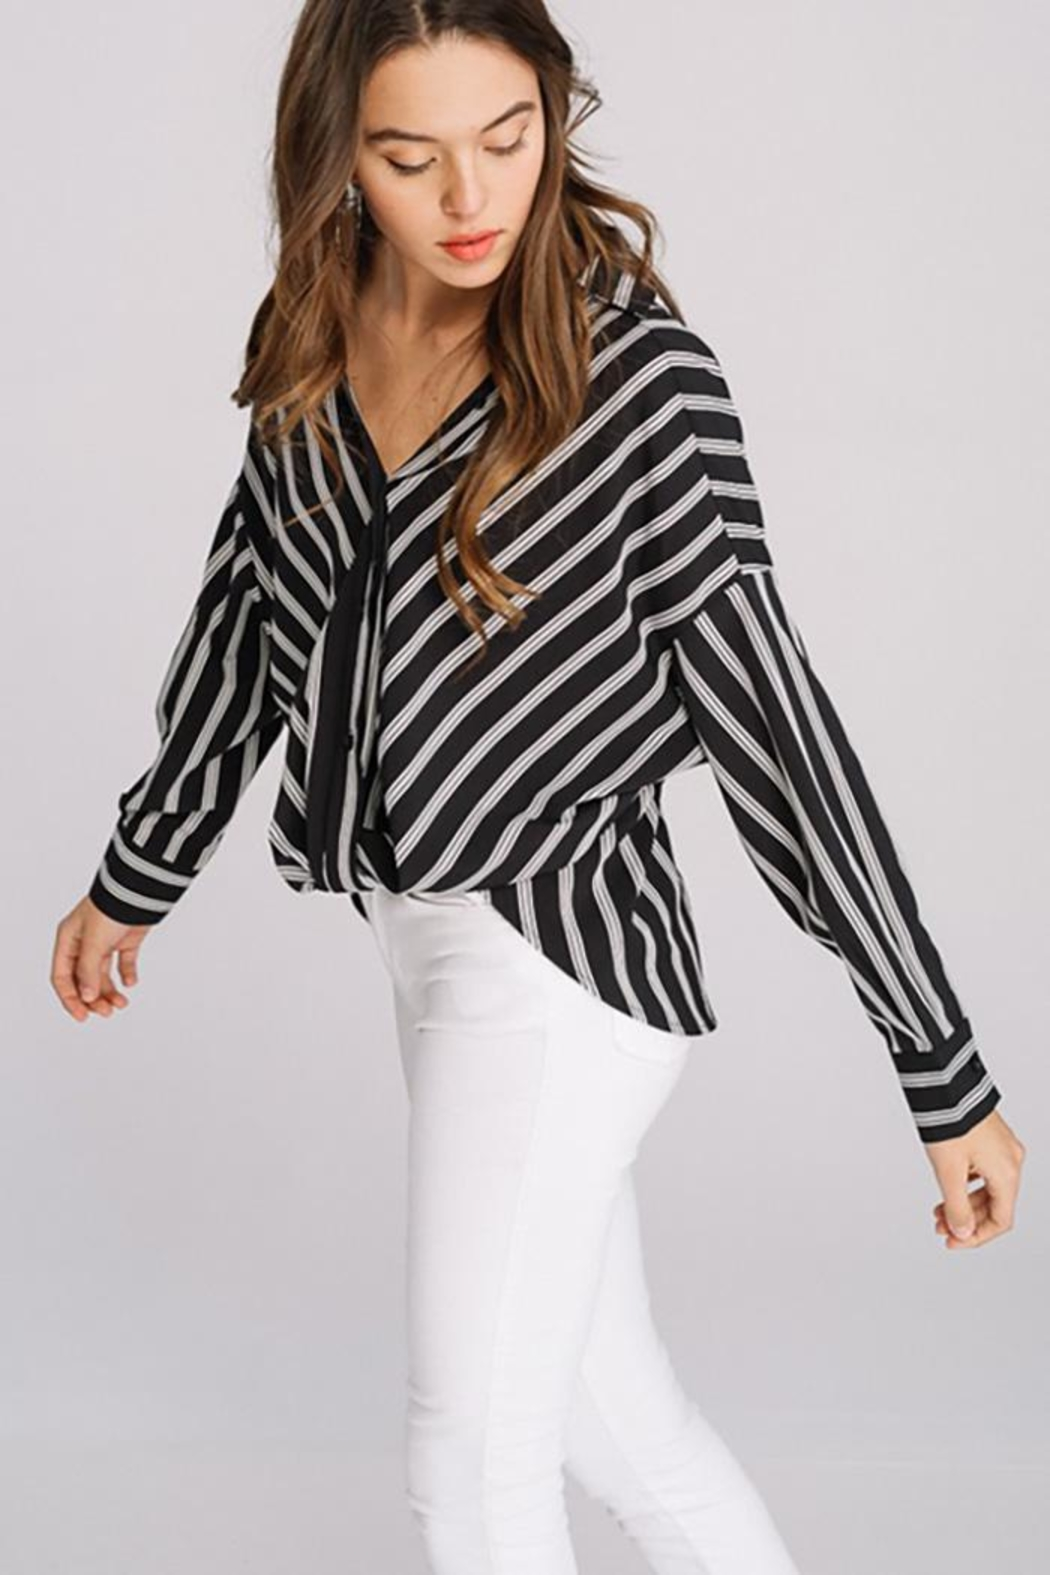 Main Strip Striped Long Sleeve - Side Cropped Image